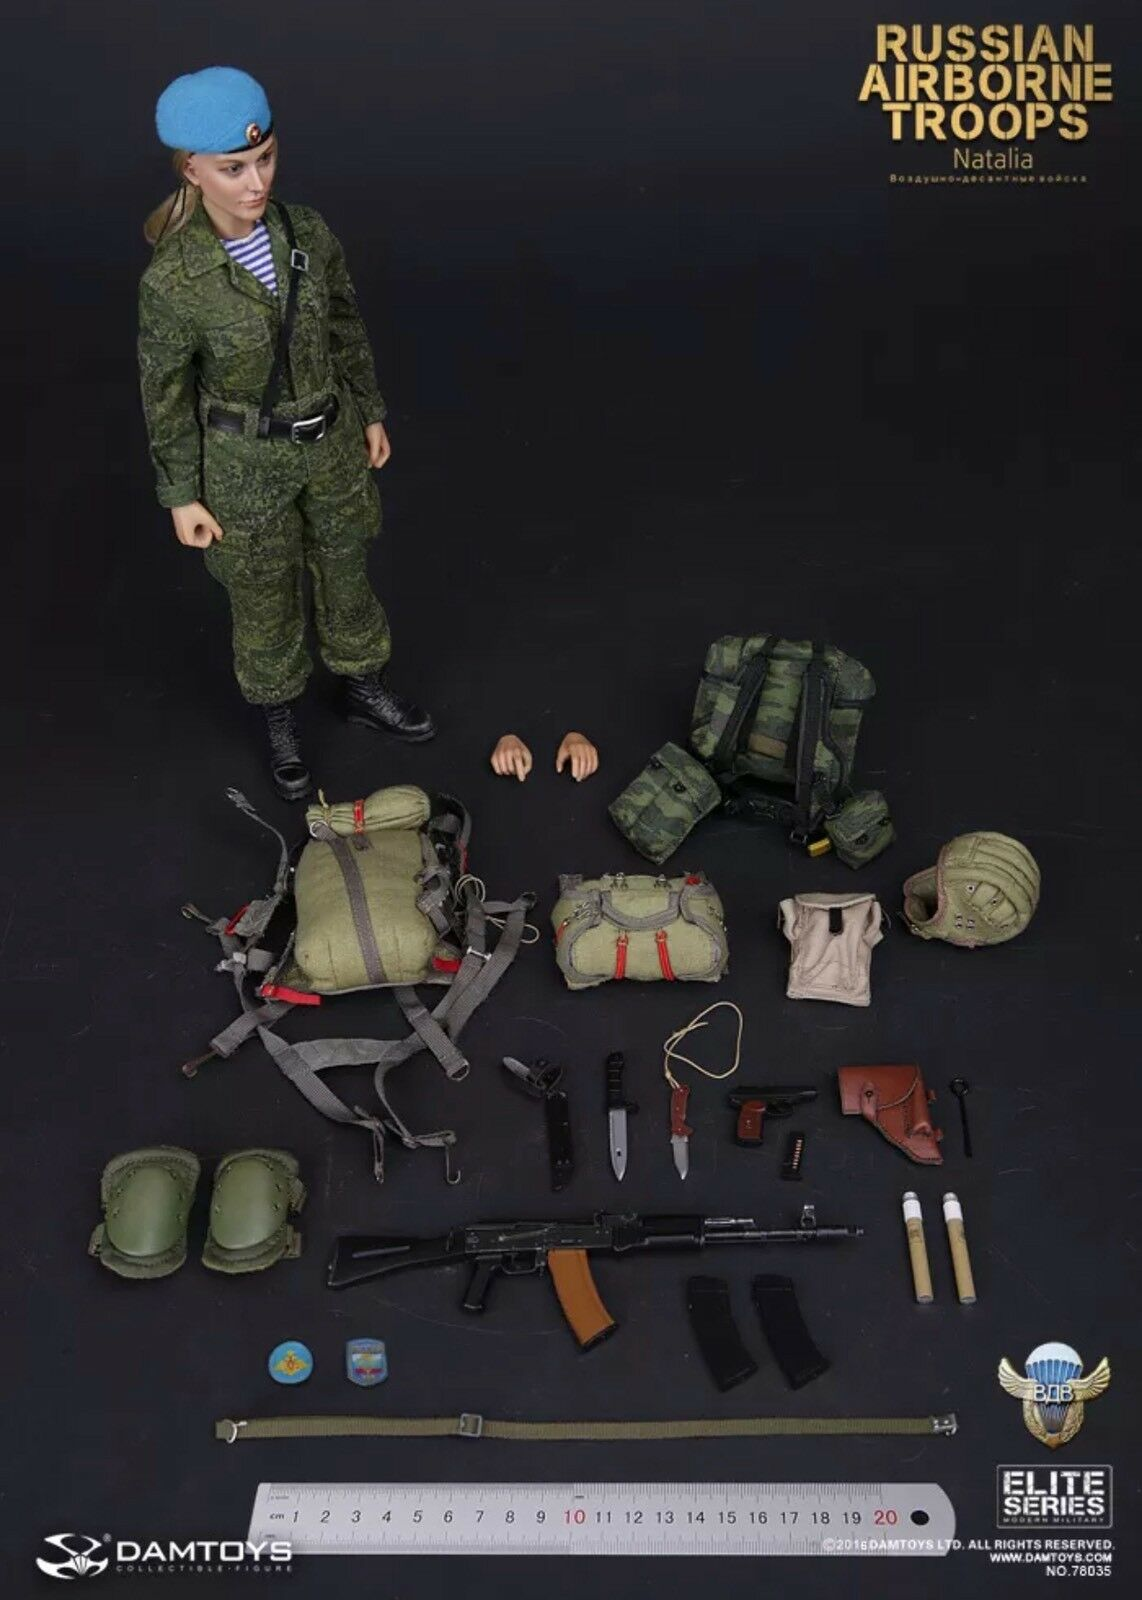 DAM Toys RUSSIAN AIRBORNE TROOPS - NATALIA 1/6 Action Figure